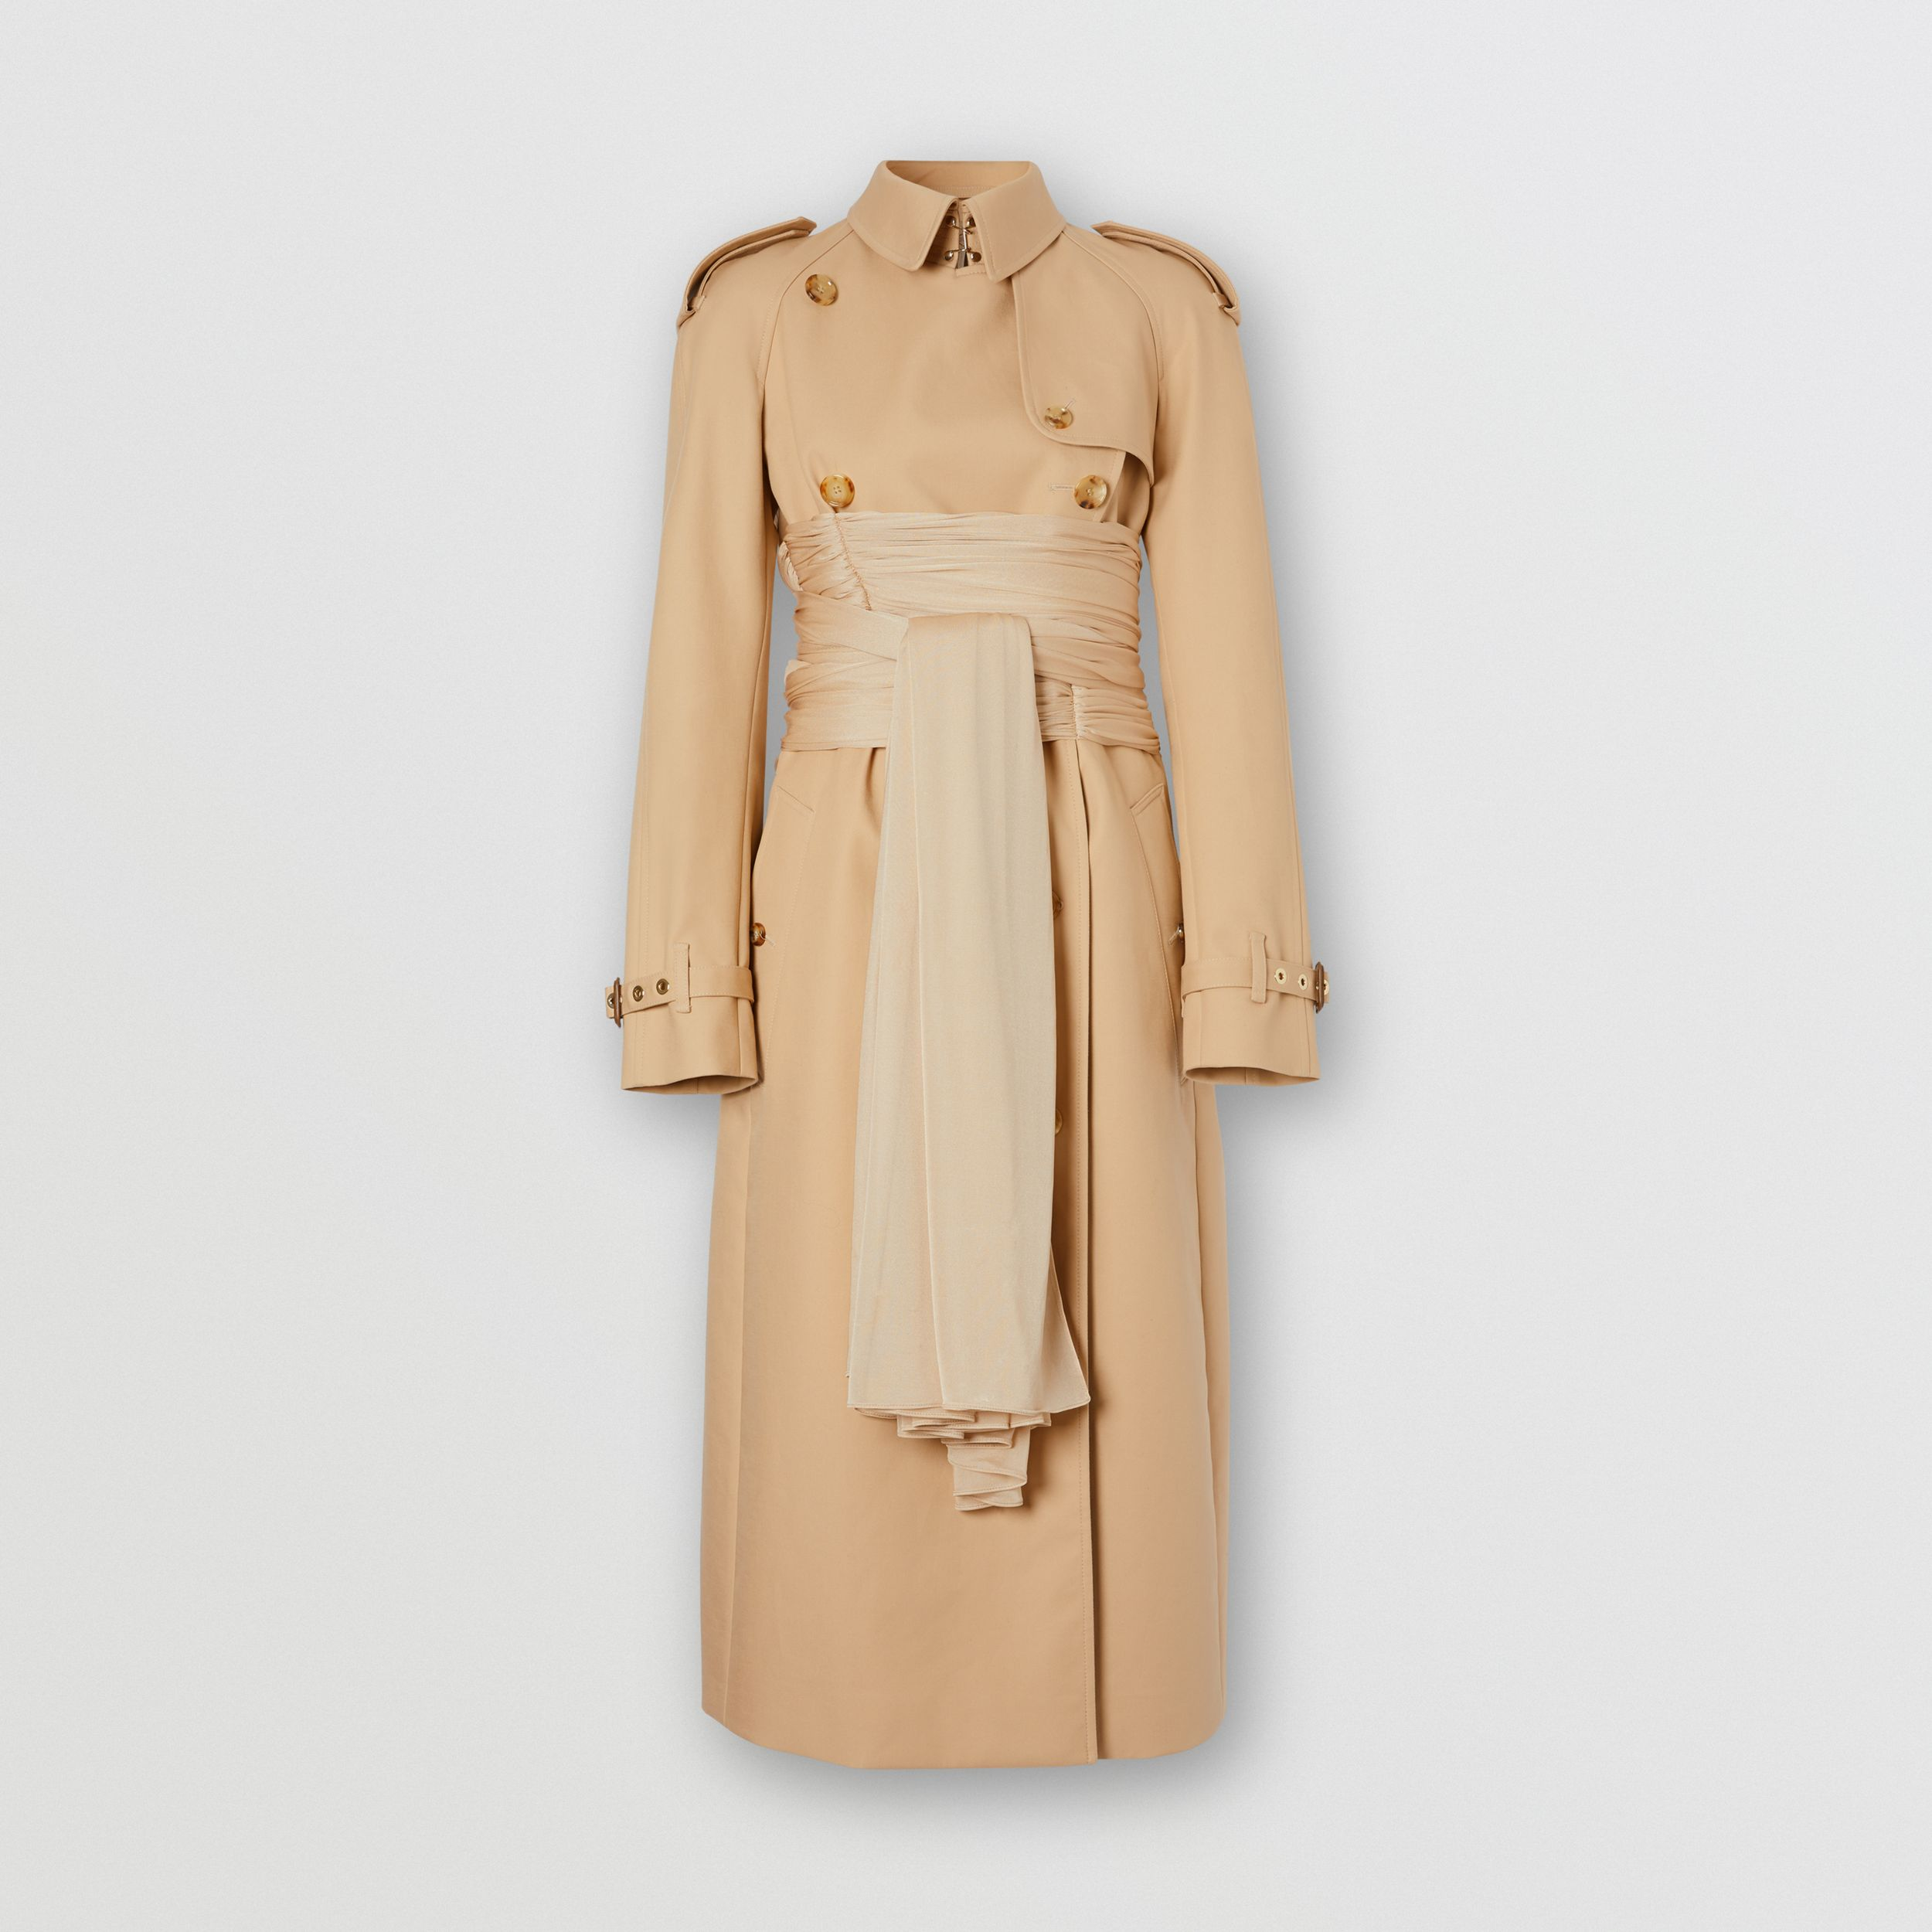 Jersey Sash Detail Cotton Gabardine Trench Coat in Soft Fawn - Women | Burberry Australia - 4